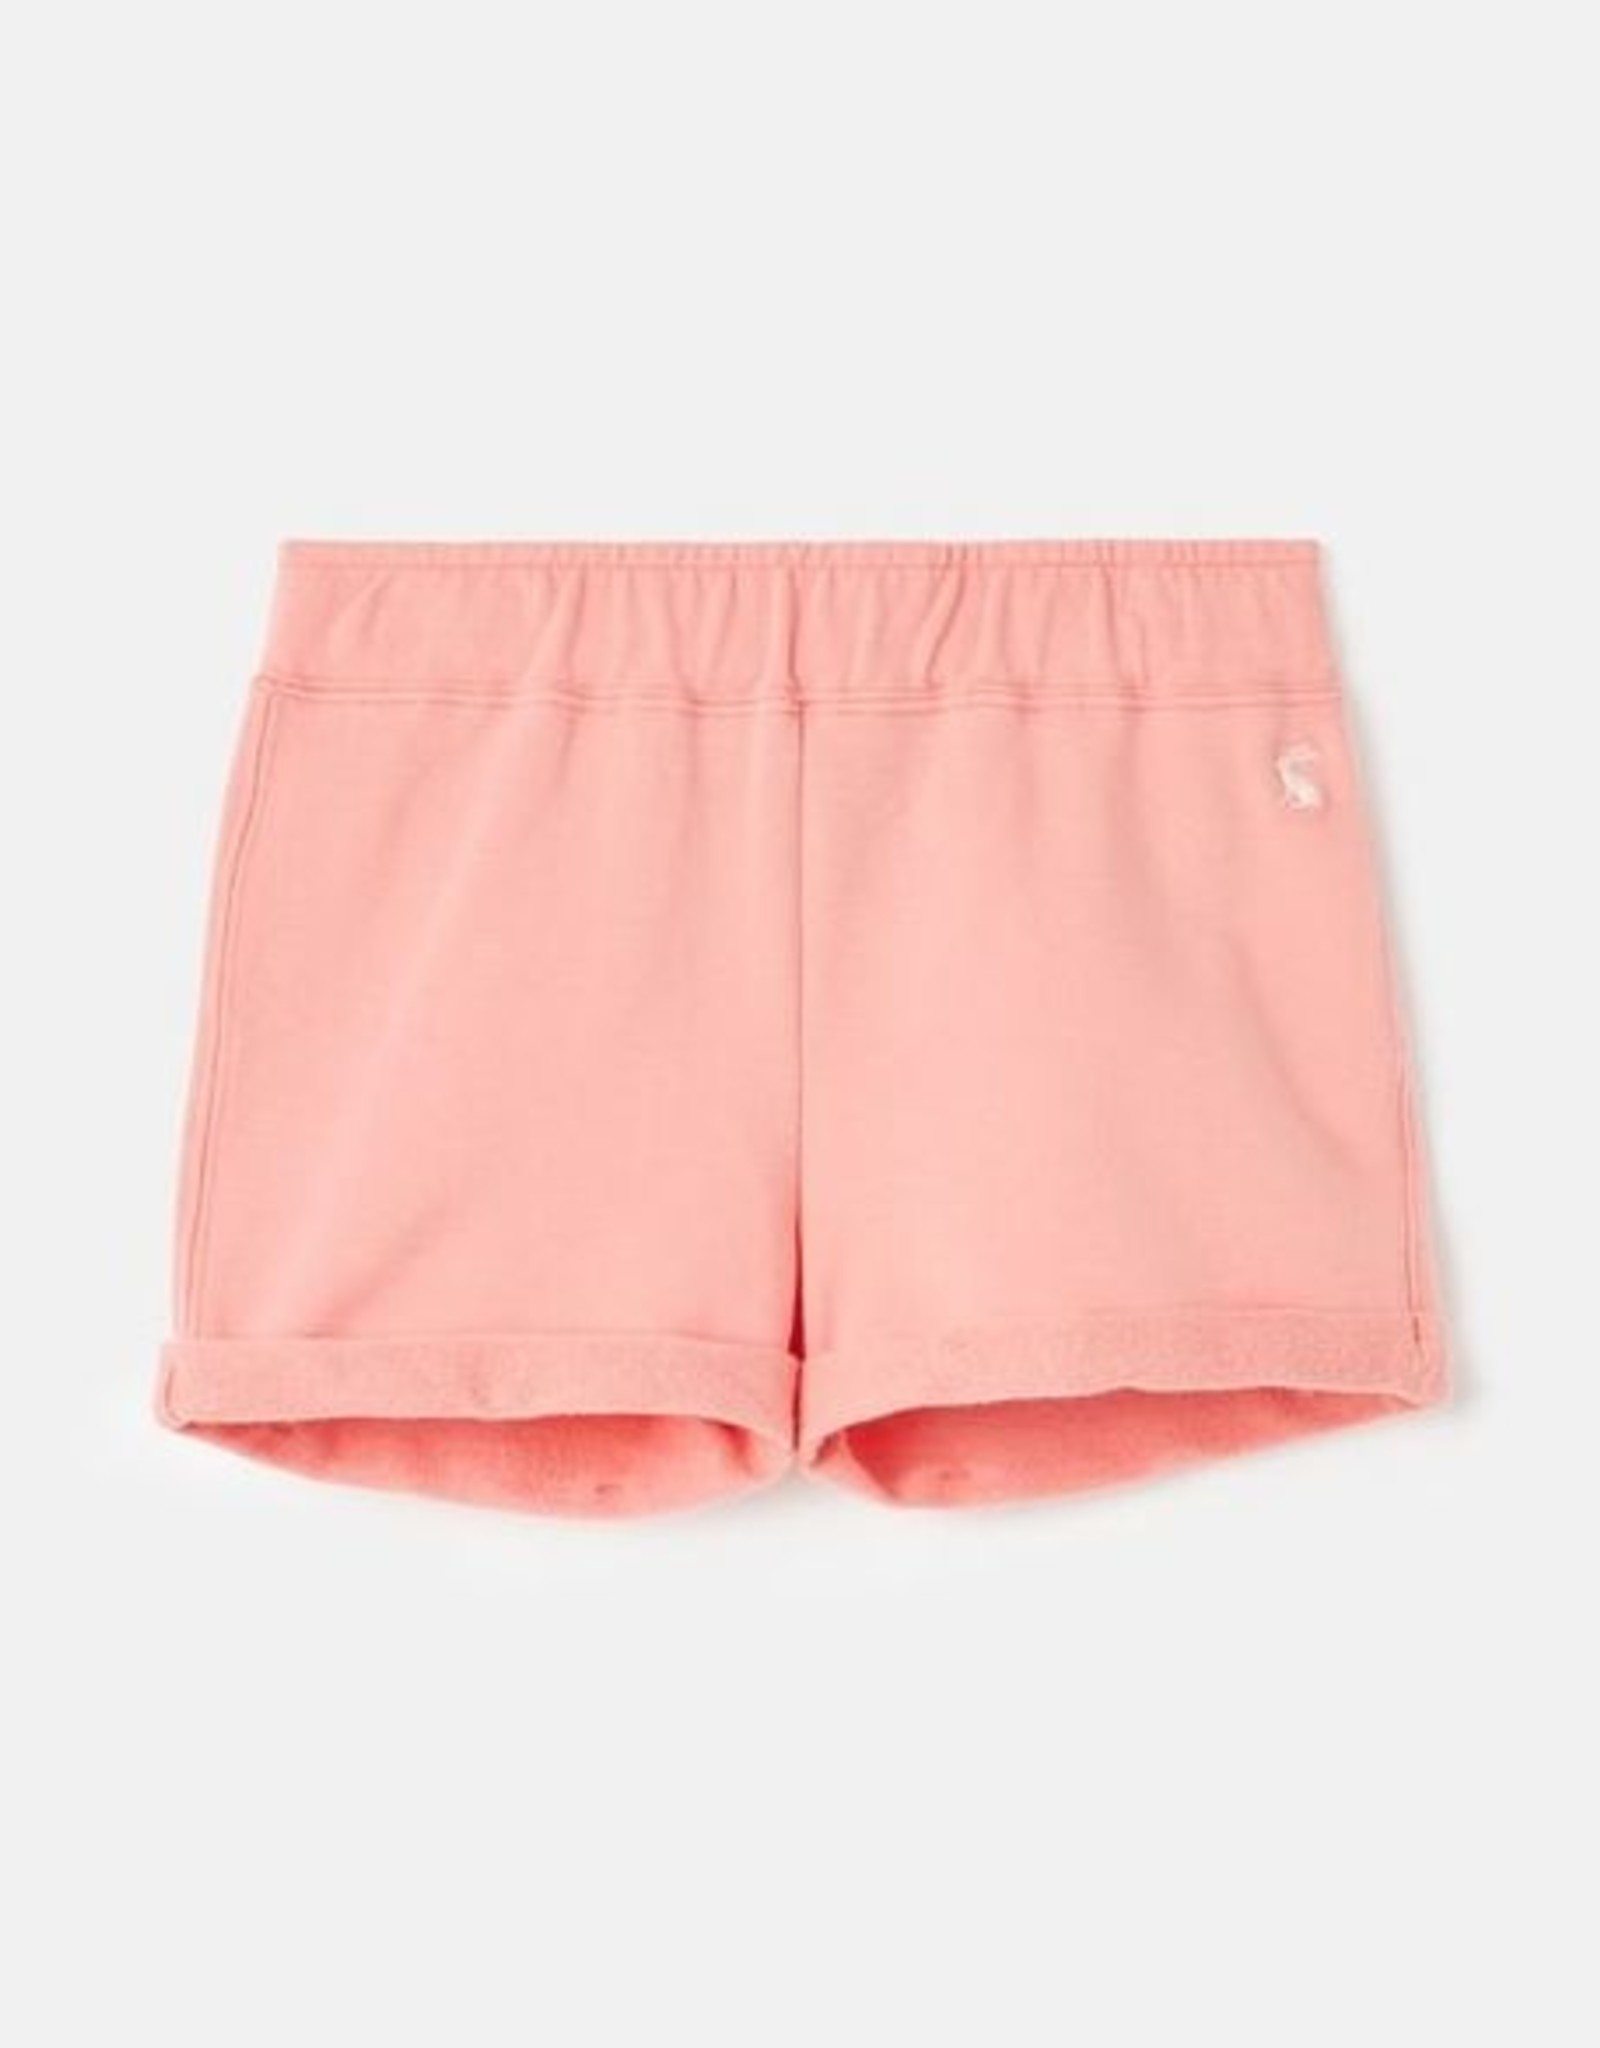 Joules SP21 G Pink Shorts